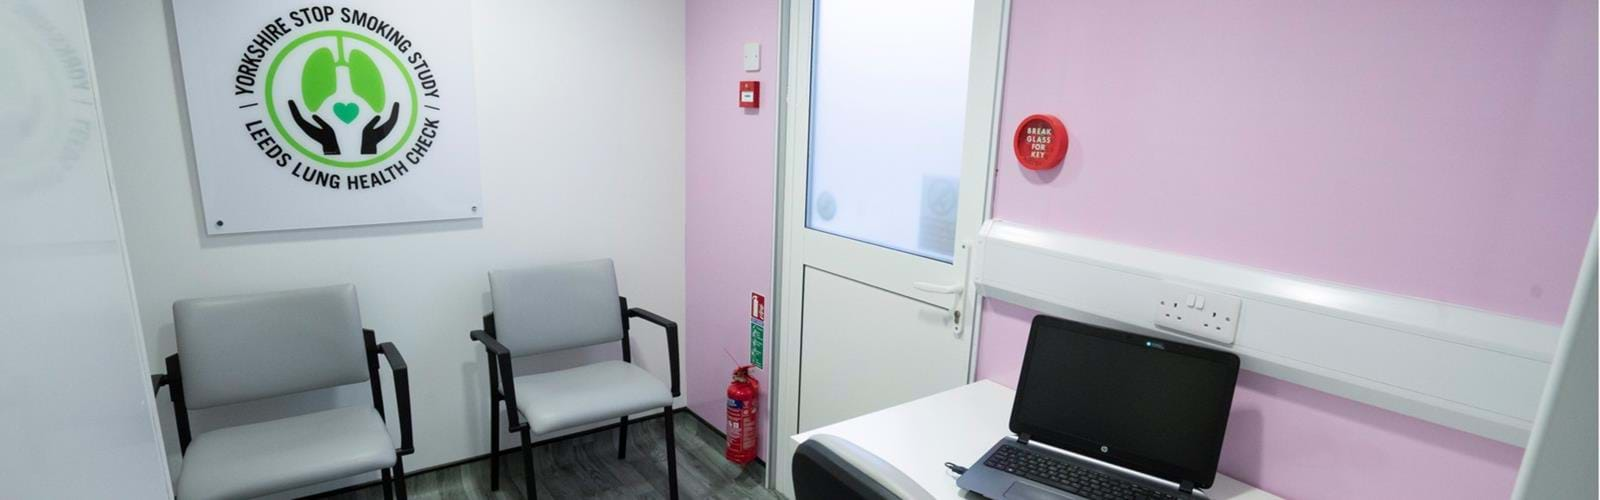 Mobile Medical Clinical consultation room_interior.jpg